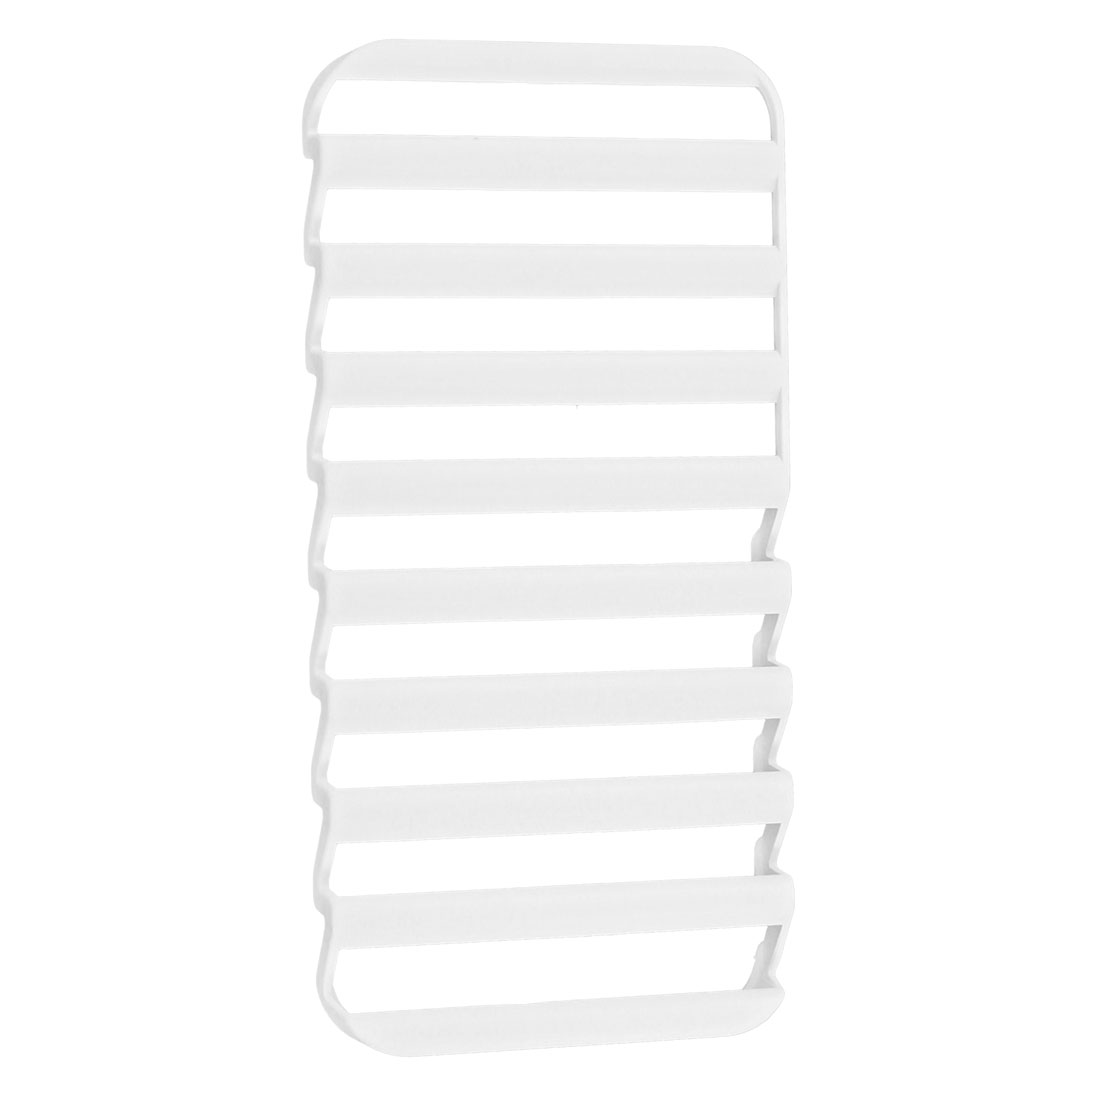 Hollow Pulse Shutter Ladder Shape Case Cover White for Apple iPhone 5 5G 5th